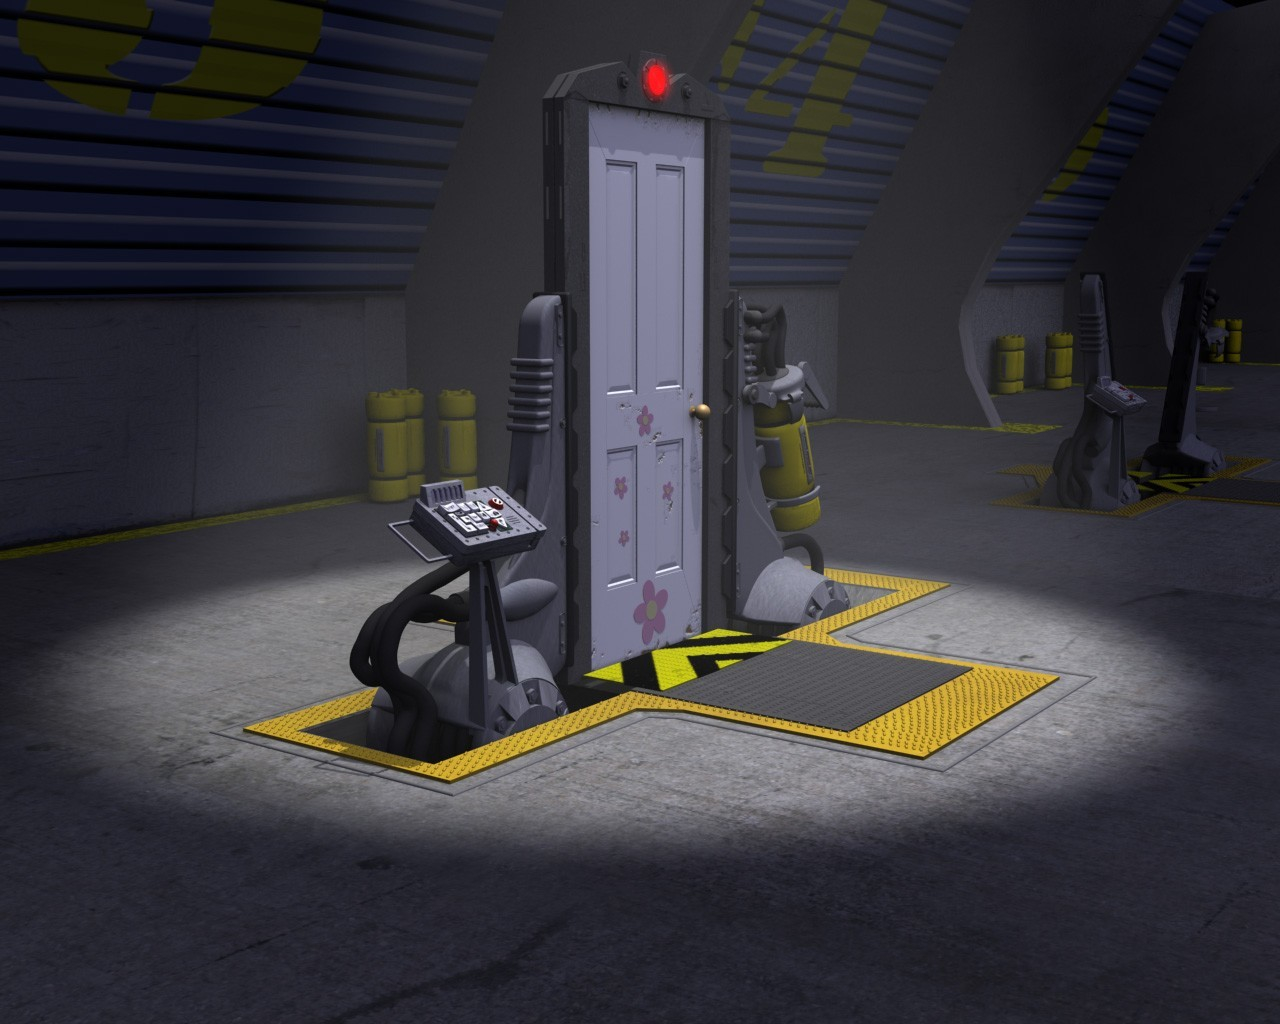 Monsters Inc Door Station By Simjoy 3d Cgsociety